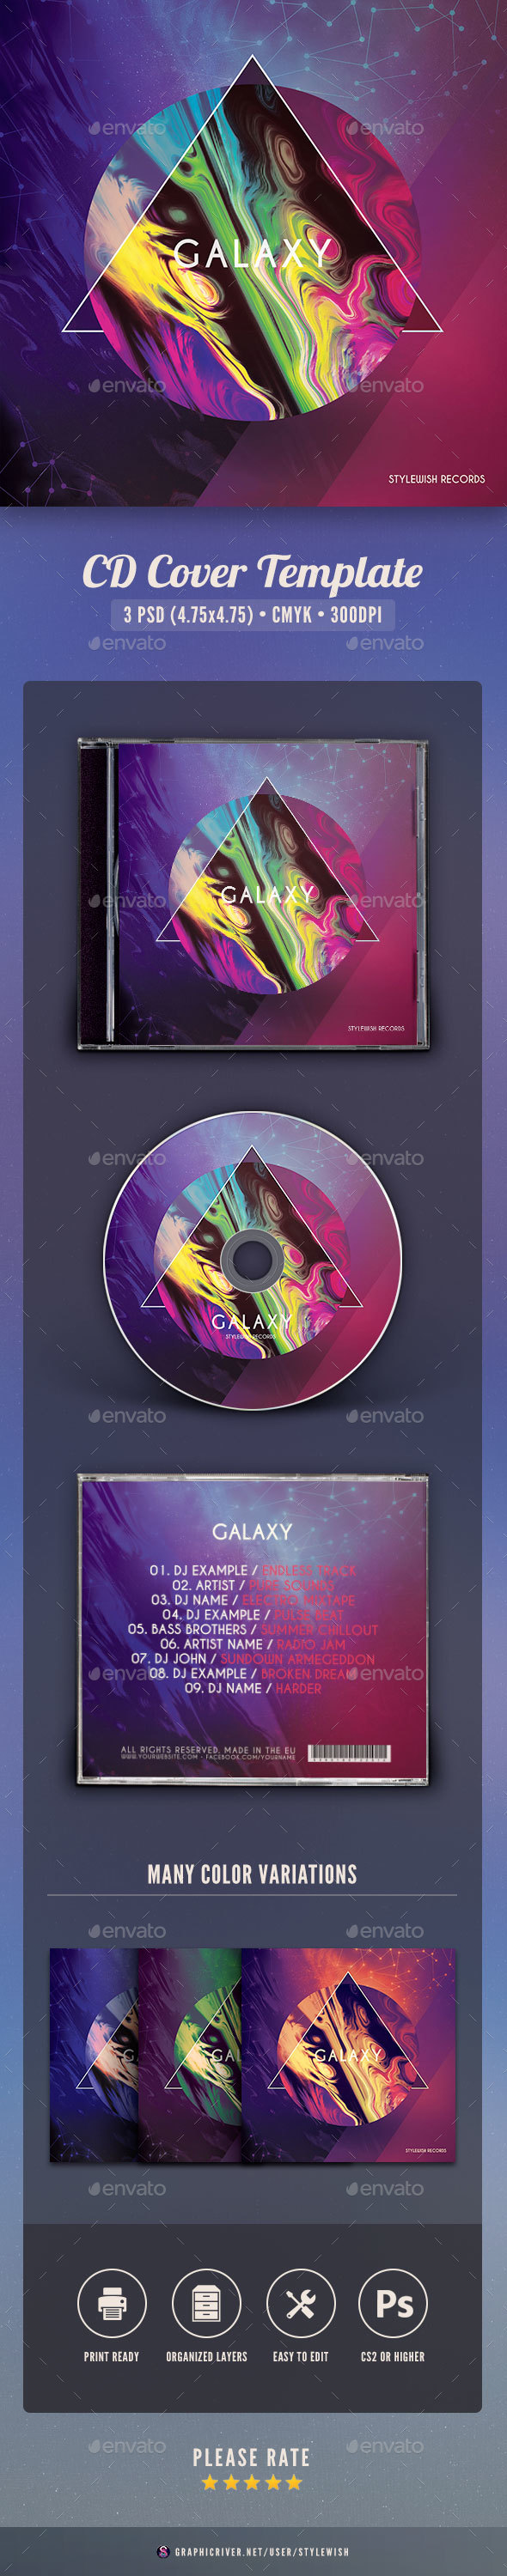 GraphicRiver Galaxy CD Cover Artwork 20993114